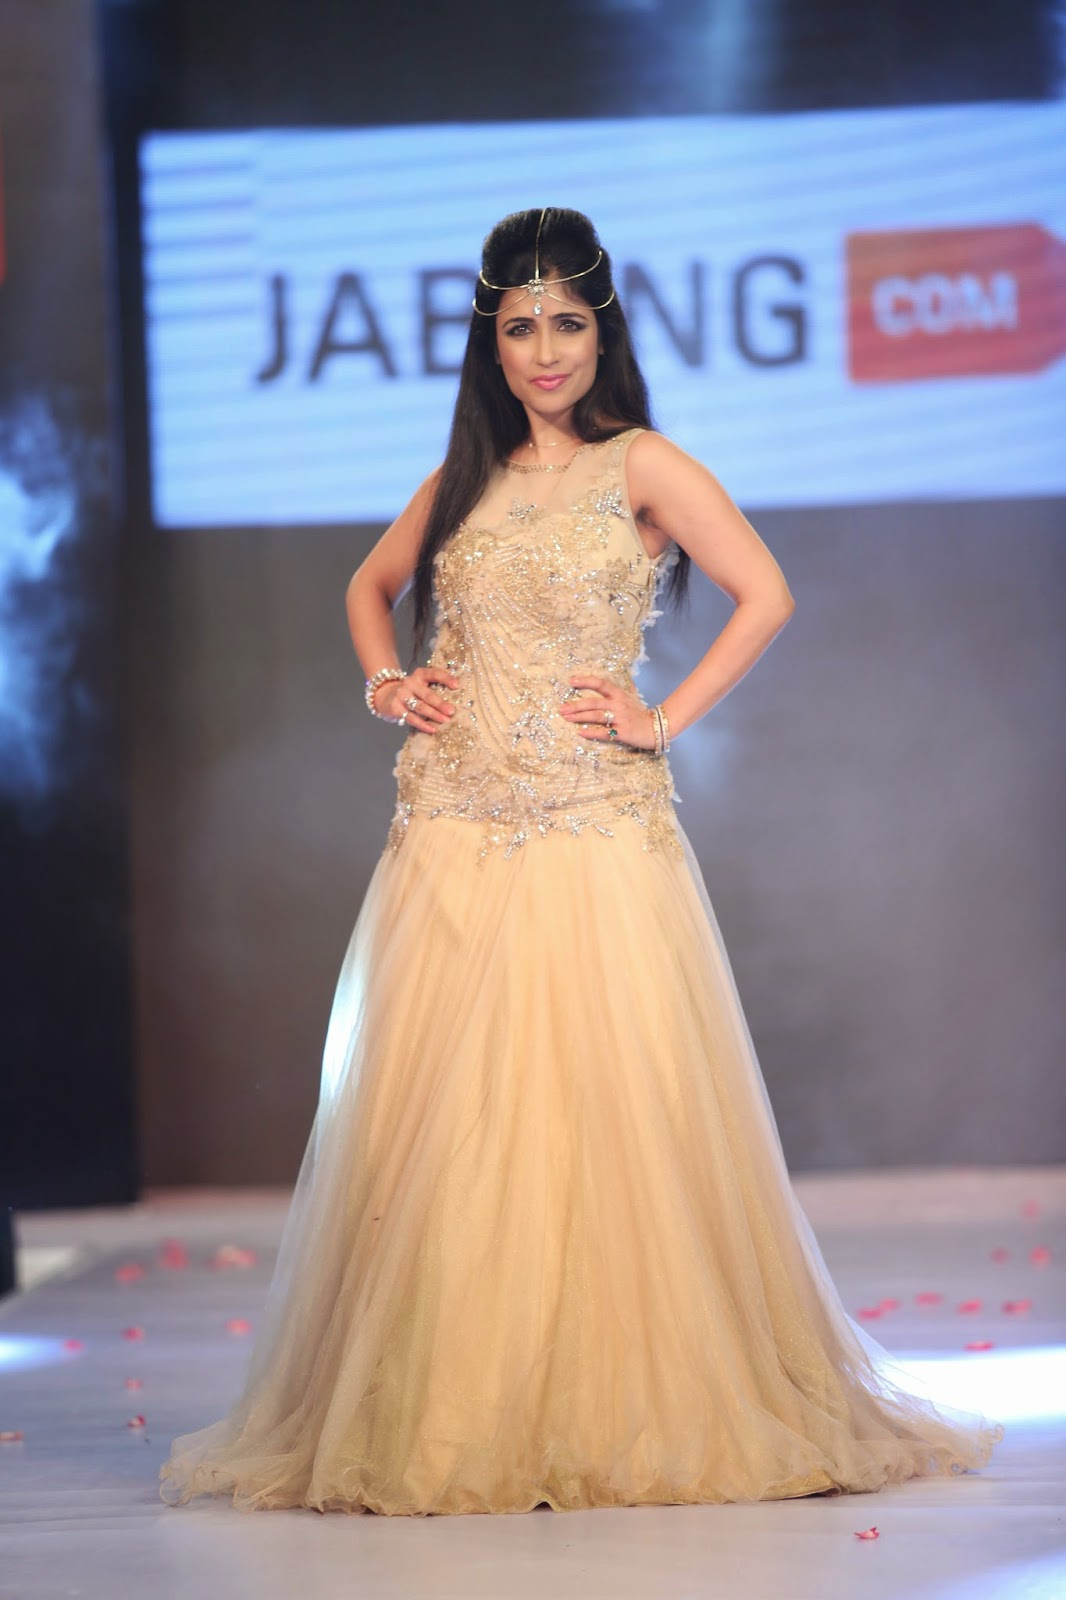 India Kids fashion Week In Association With Jabong - Day 2 Pictures, Brands, Designers and Models